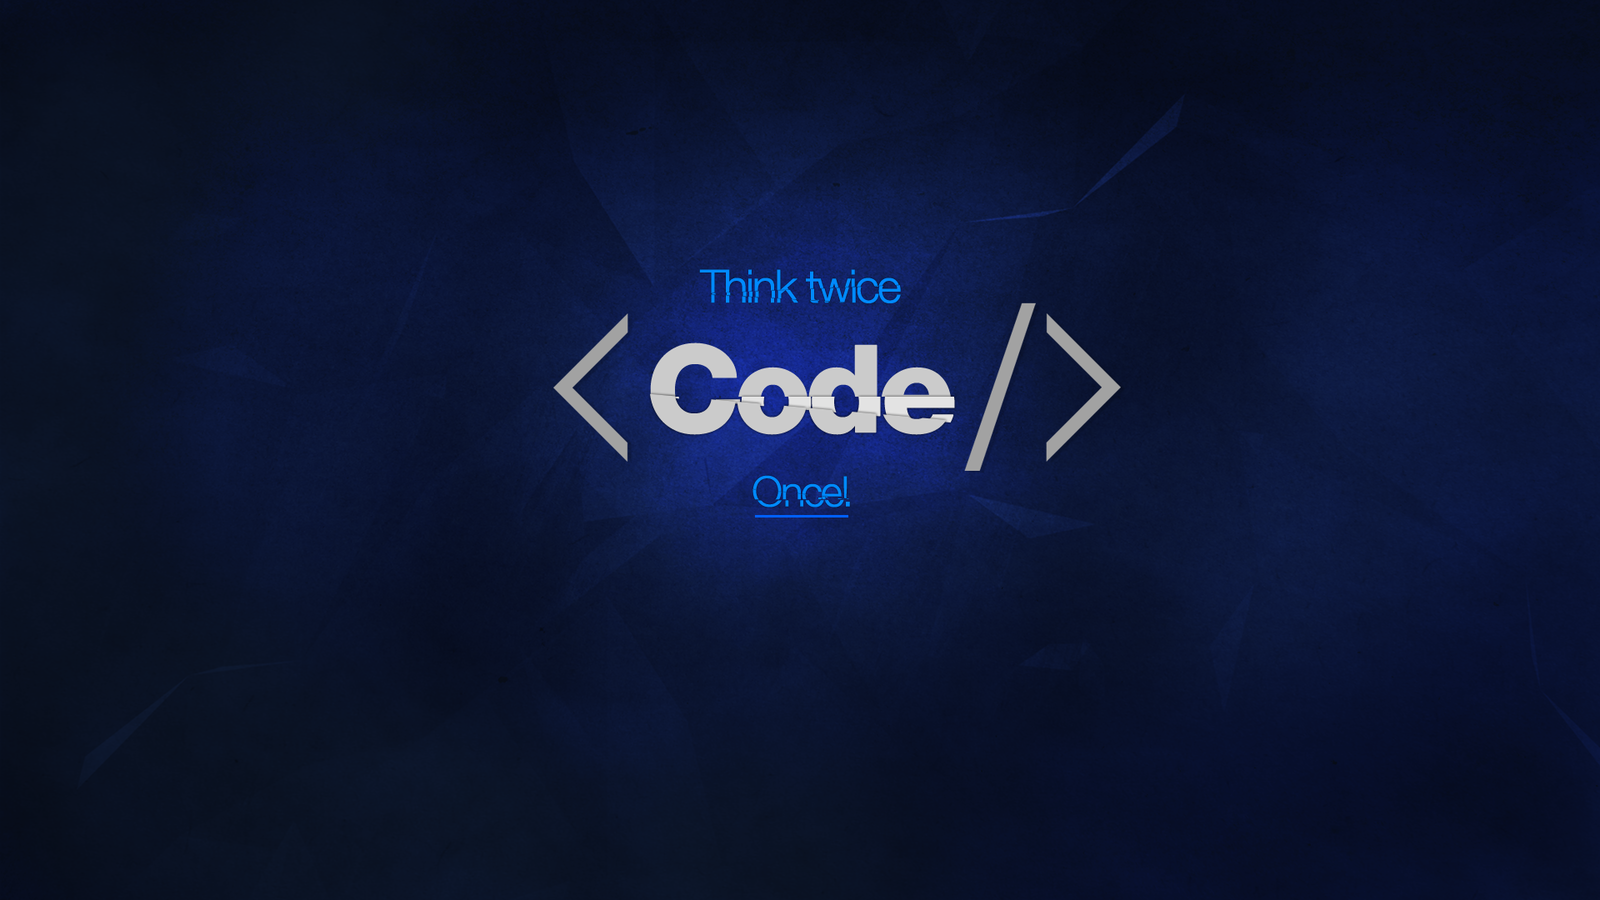 Think Twice Code Once (36 Wallpapers) – HD Desktop Wallpapers